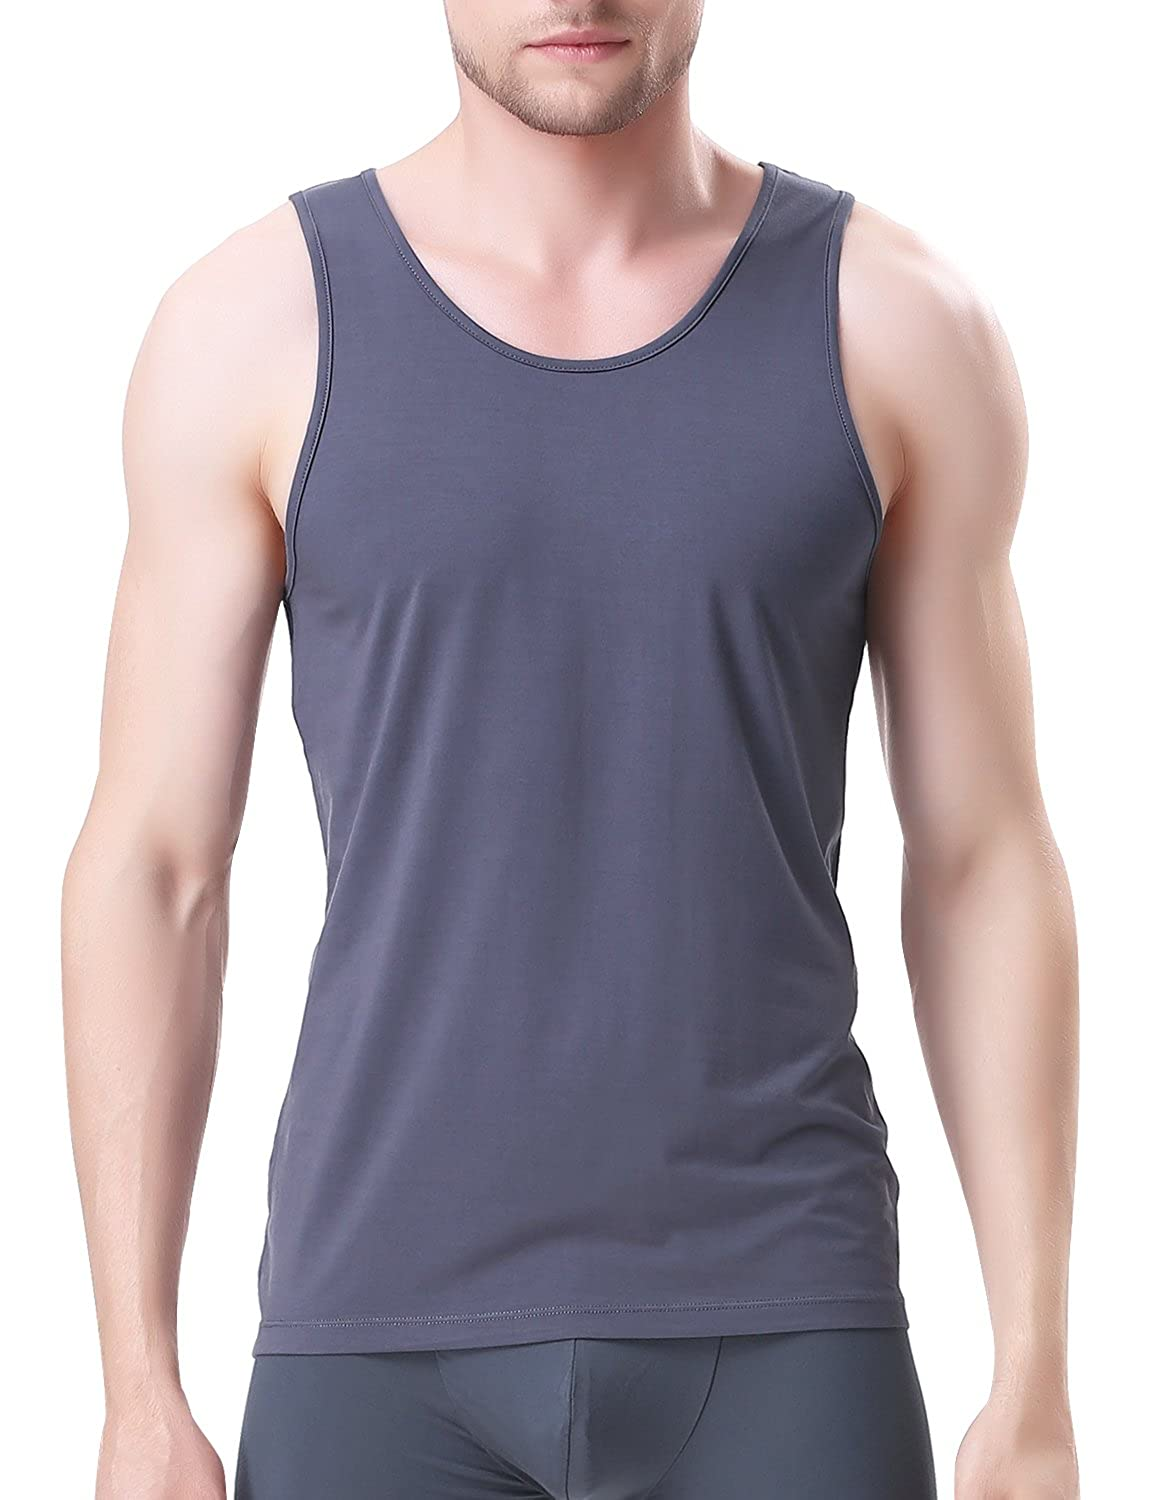 David Archy Mens Bamboo Rayon /& Cotton Undershirts Crew Neck Tank Tops in 3 or 4 Pack